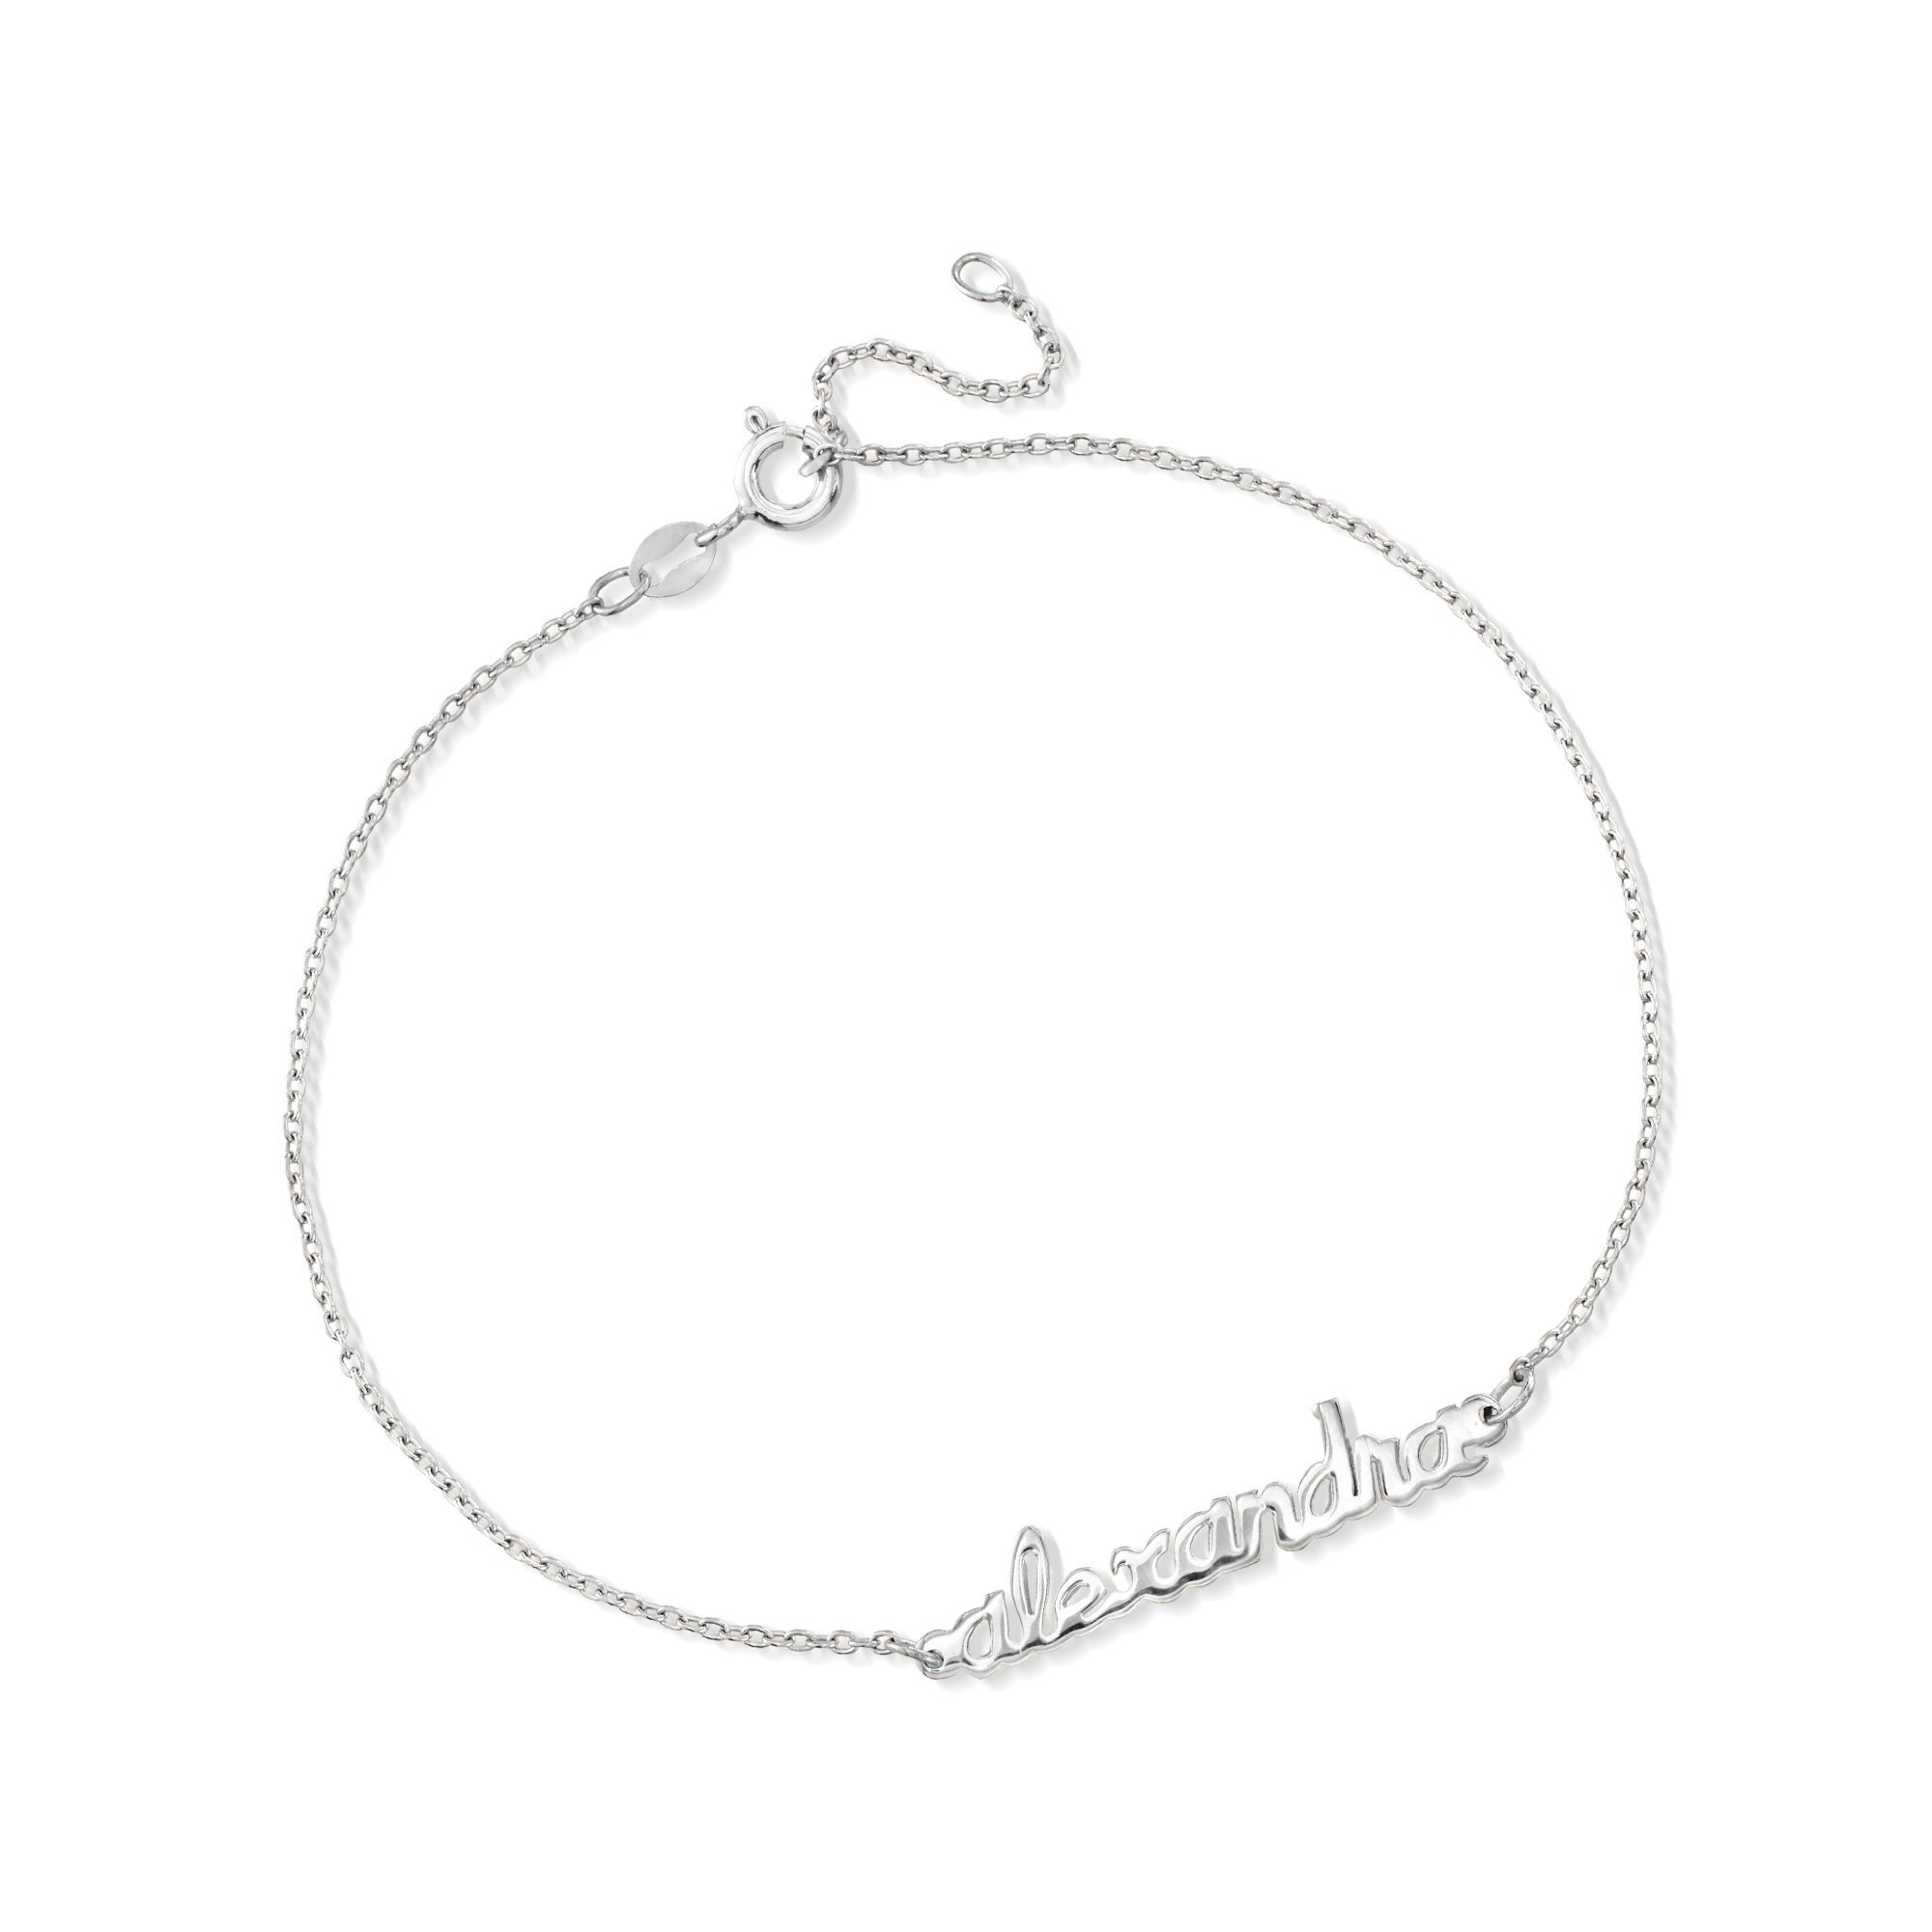 mujer ankle ethnic feather fashion bracelet product com tobilleras jewelry dhgate foot from halhal pulseras simple ried braclet chain anklet beach name